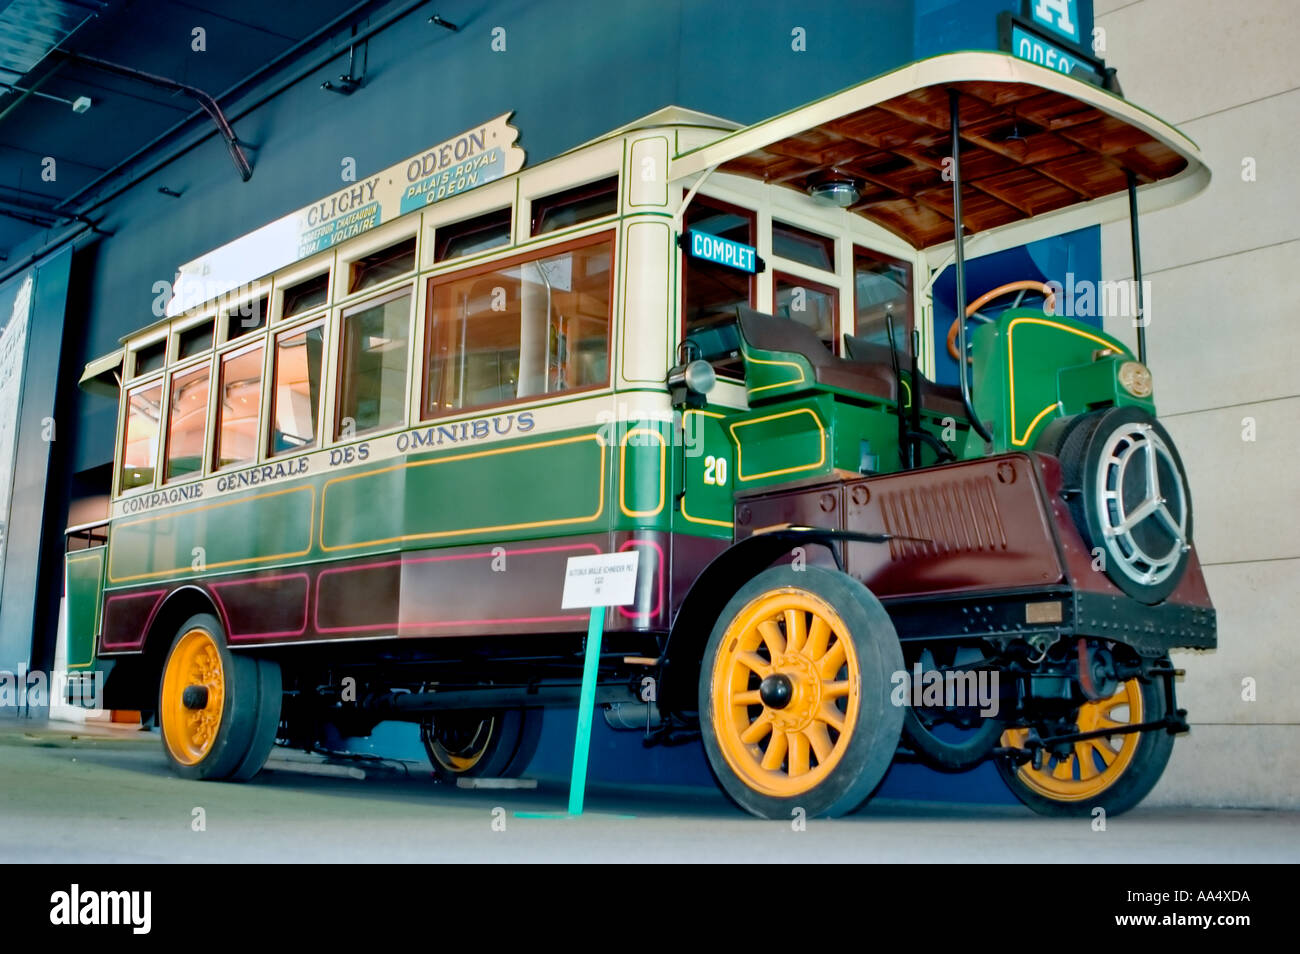 paris france old city antique 1930 bus on display in of ratp stock photo 4086489 alamy. Black Bedroom Furniture Sets. Home Design Ideas